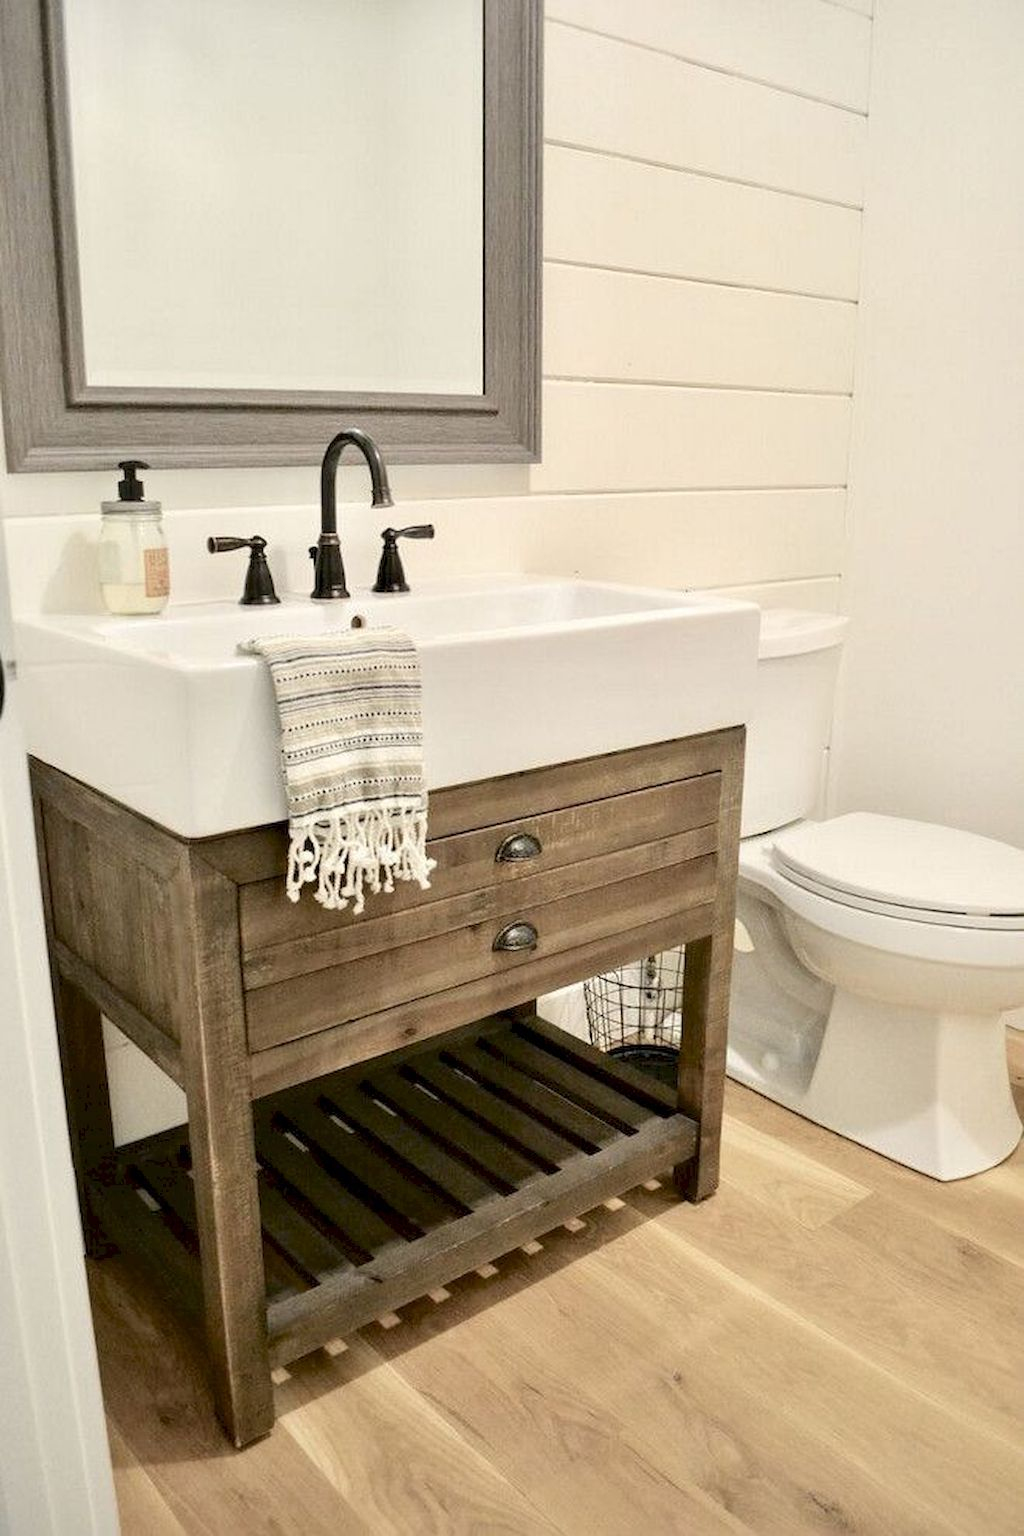 65 Guest Bathroom Makeover Ideas on A Budget | Budgeting, Maximize ...